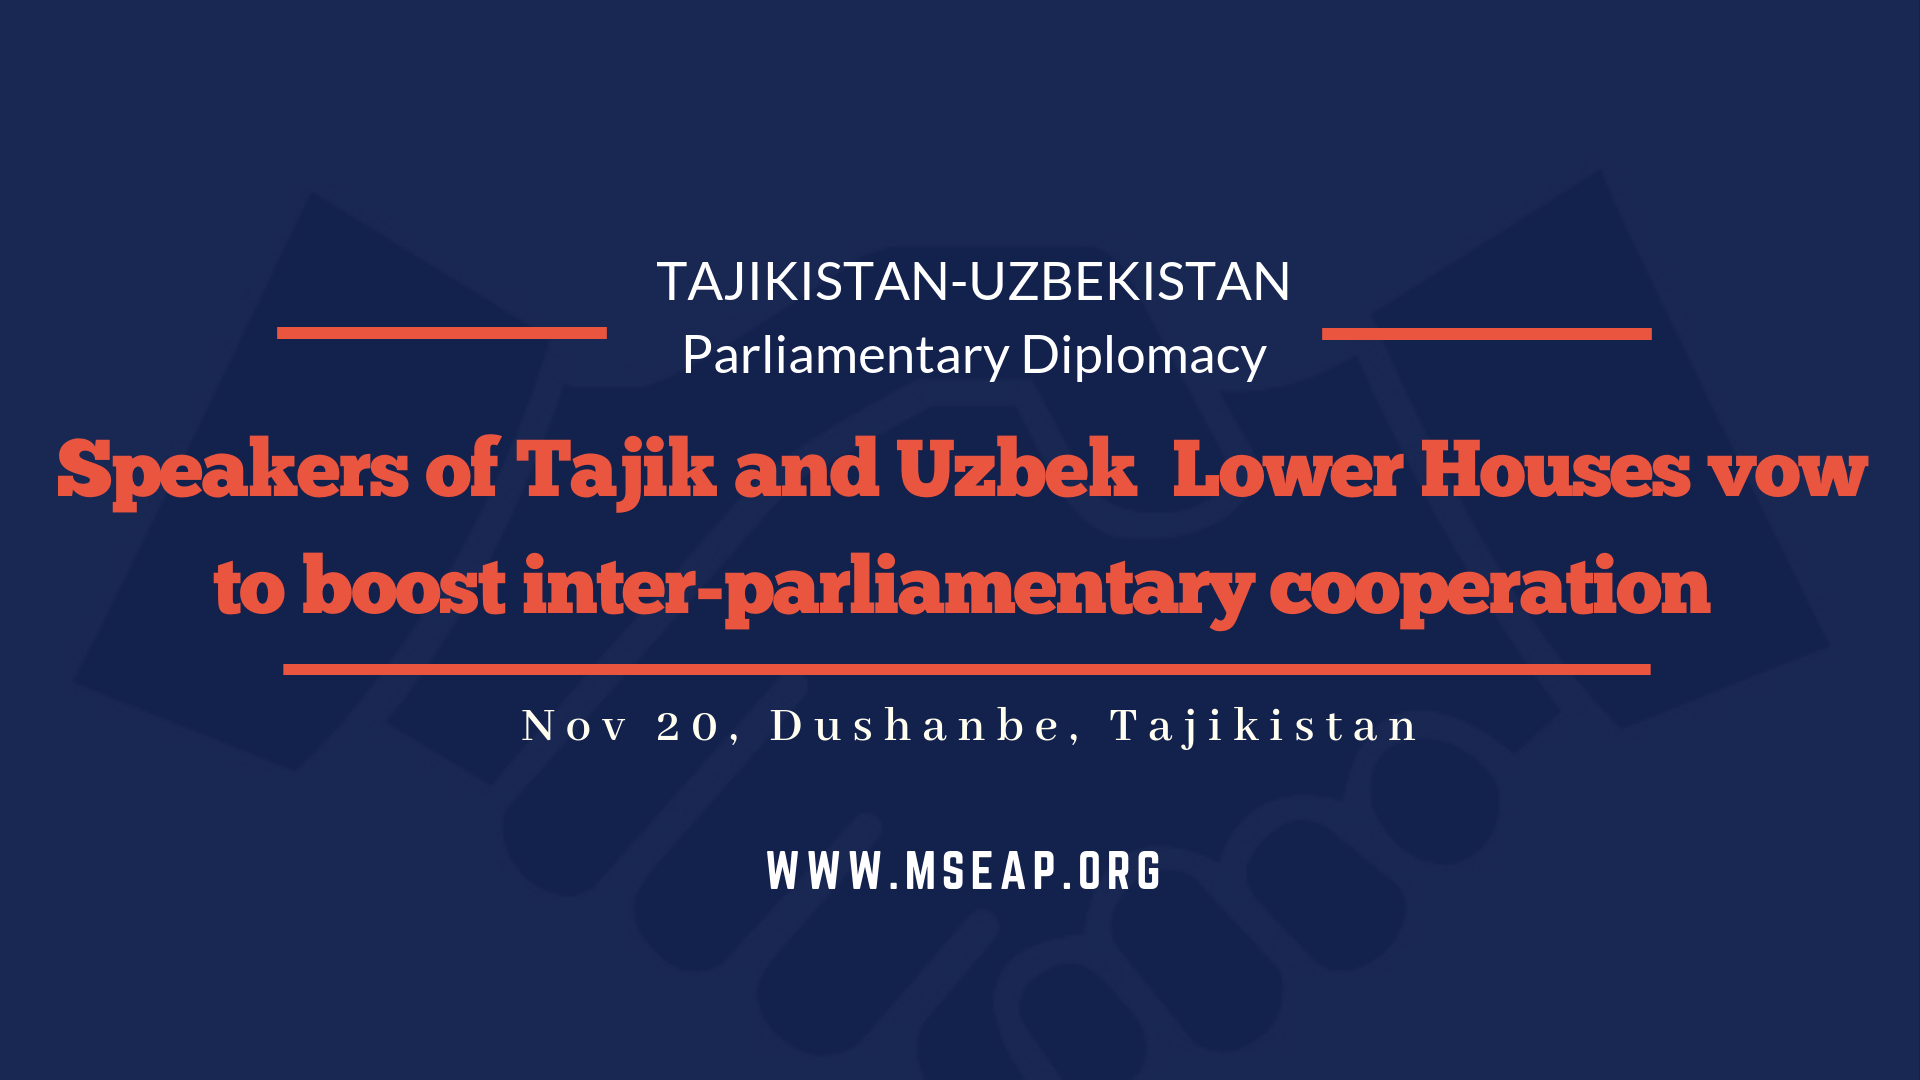 Tajik and Uzbek Speakers of Lower House vow to boost bilateral inter-parliamentary cooperation